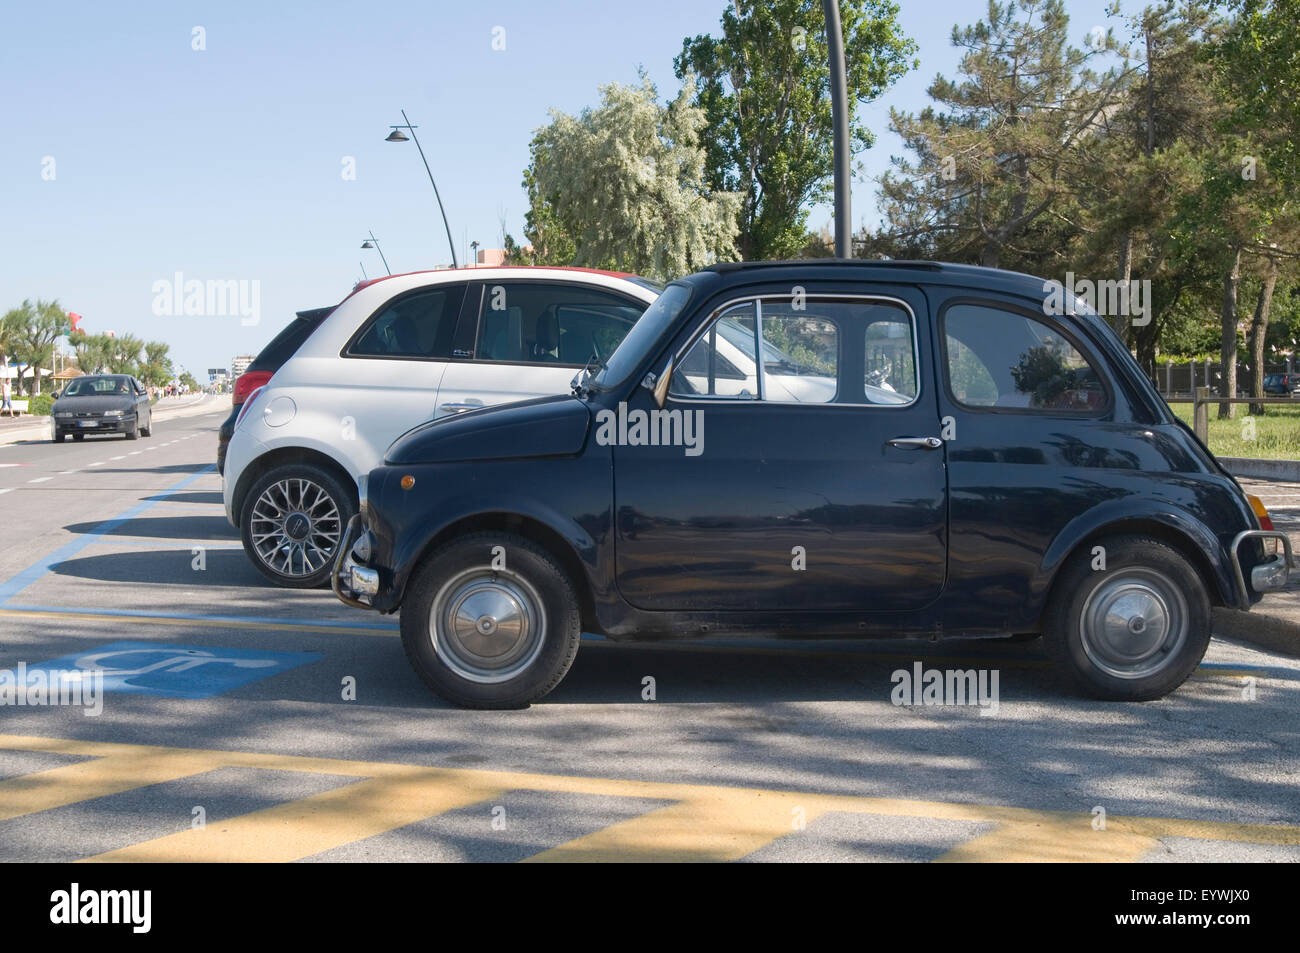 fiat 500 old new size classic modern comparison huge big bigger car cars getting tiny small city wheel wheels - Stock Image